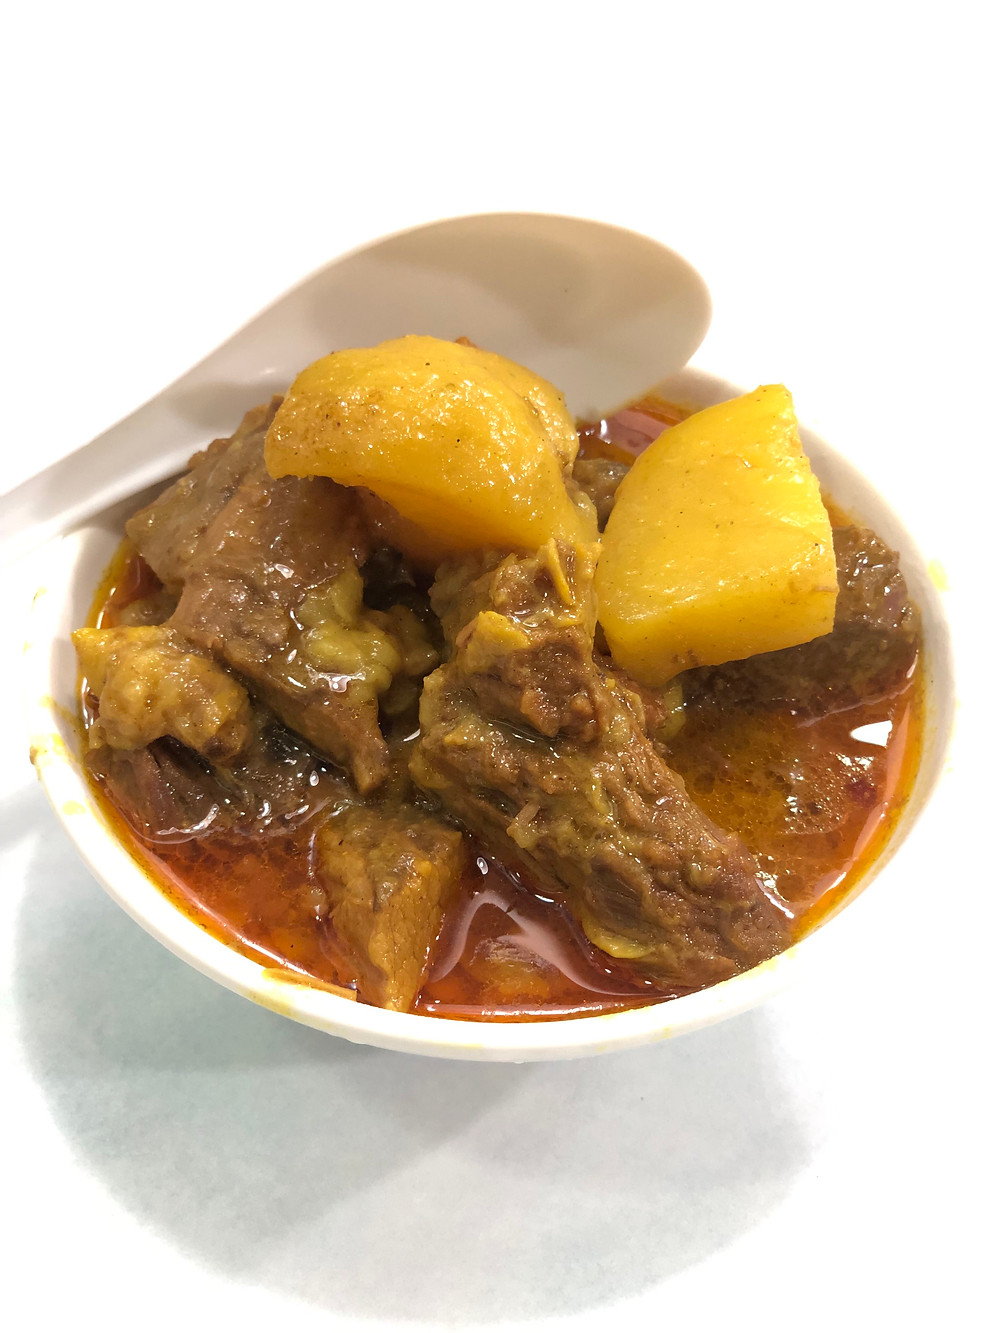 A delicious bowl of curry beef brisket at Sister Wah Beef Brisket